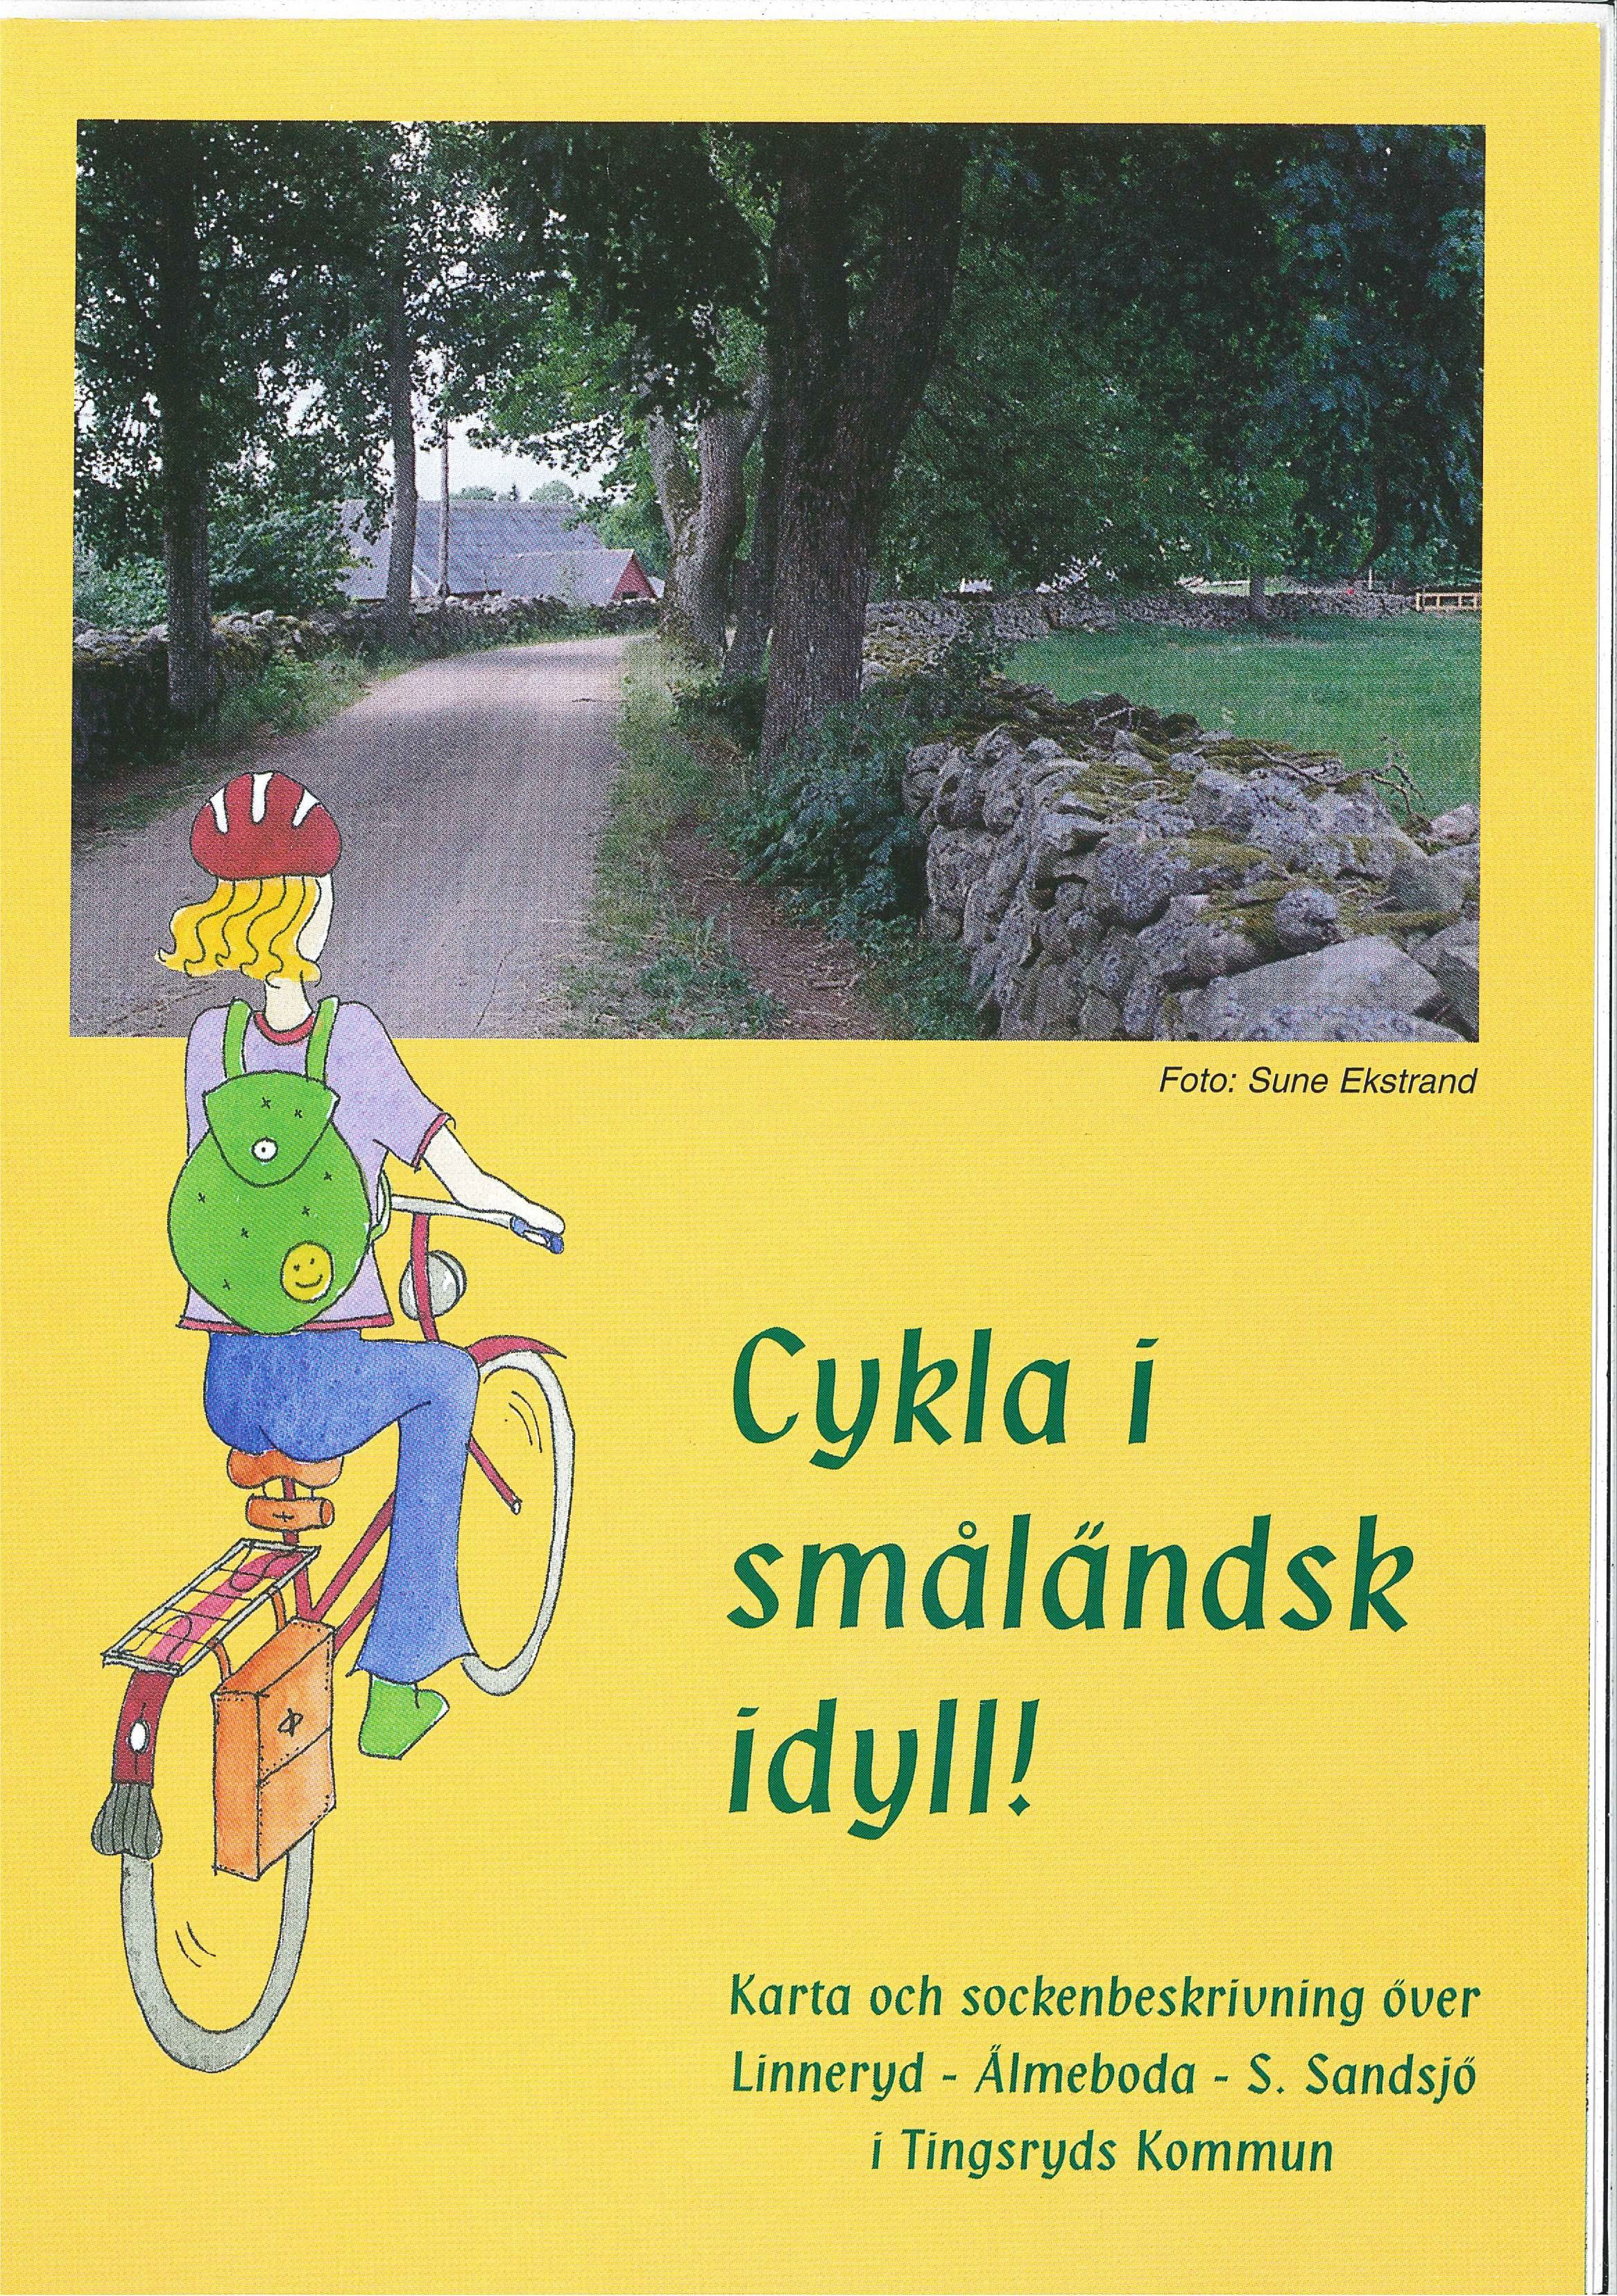 Biking through landscapes typically for Småland!